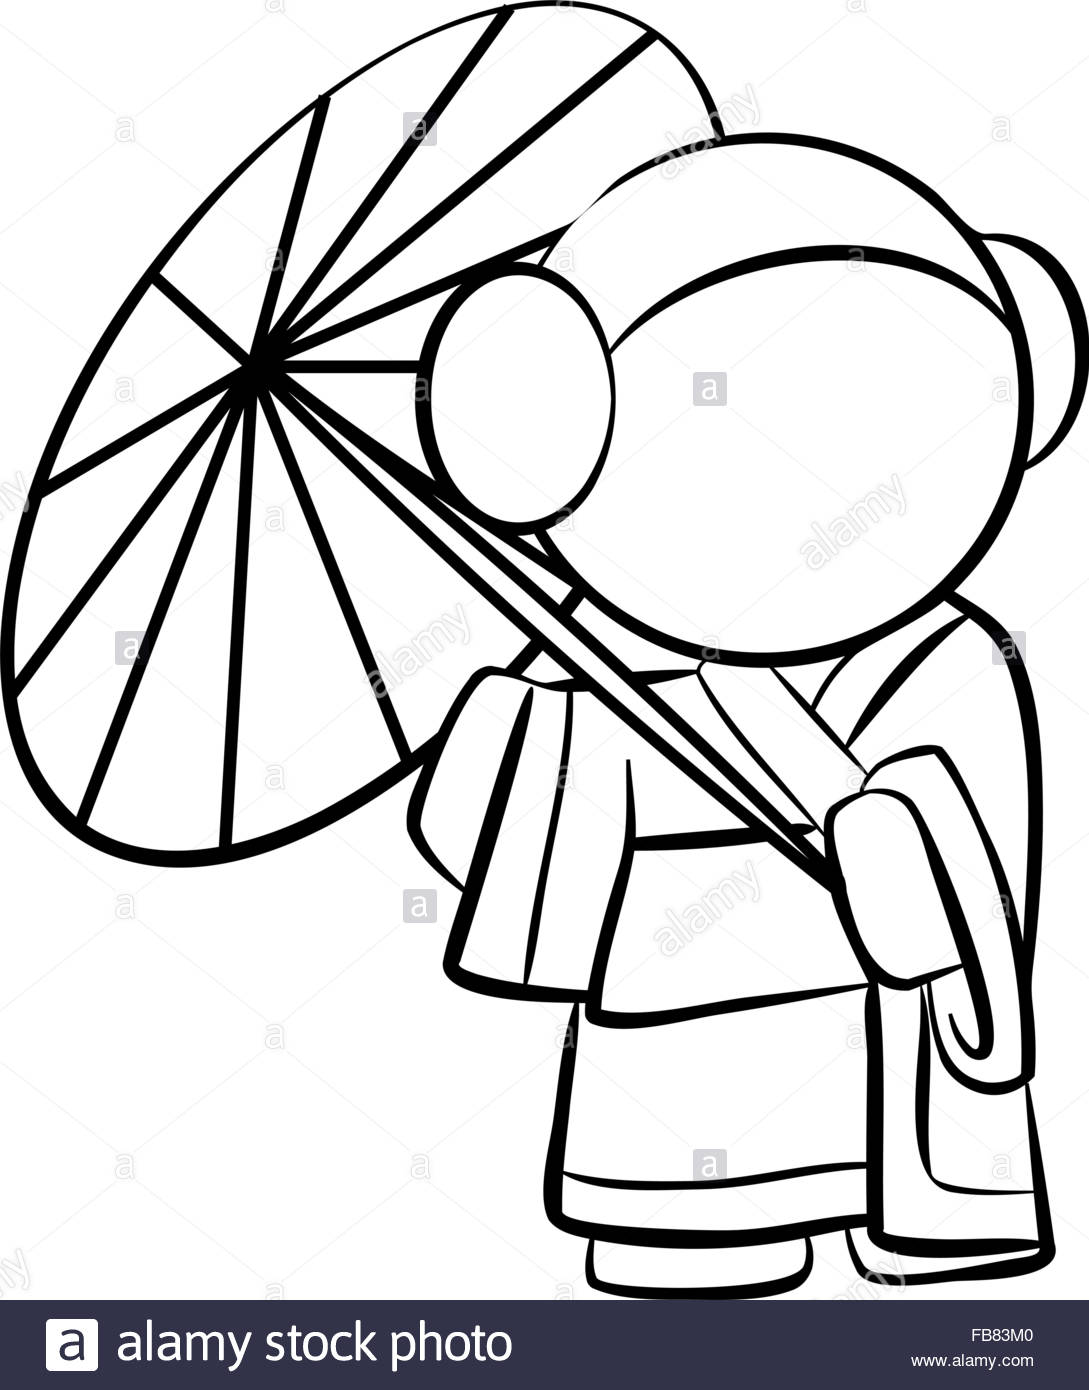 1089x1390 Line Drawing Of A Cute Geisha With Umbrella Stock Vector Art